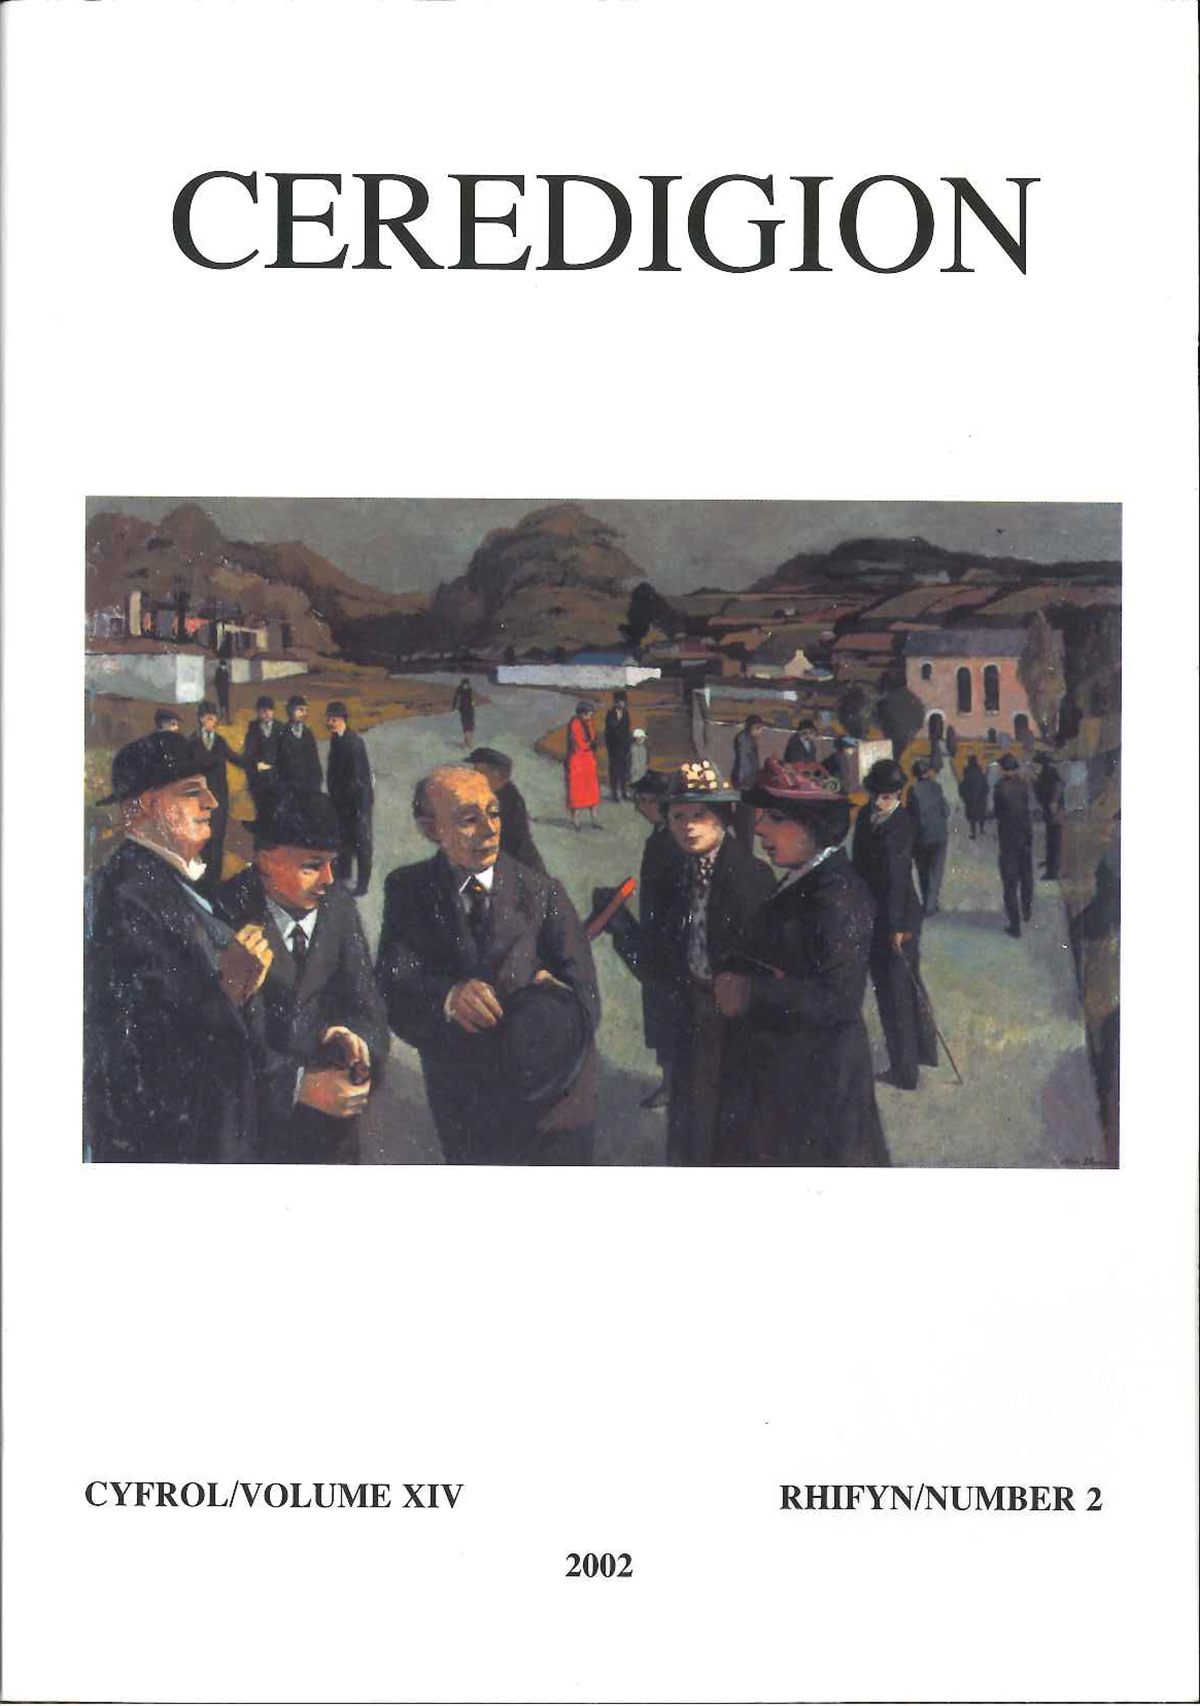 Ceredigion Journal of the Ceredigion Historical Society Vol XIV, No 2 2002 - ISBN 0069 2263